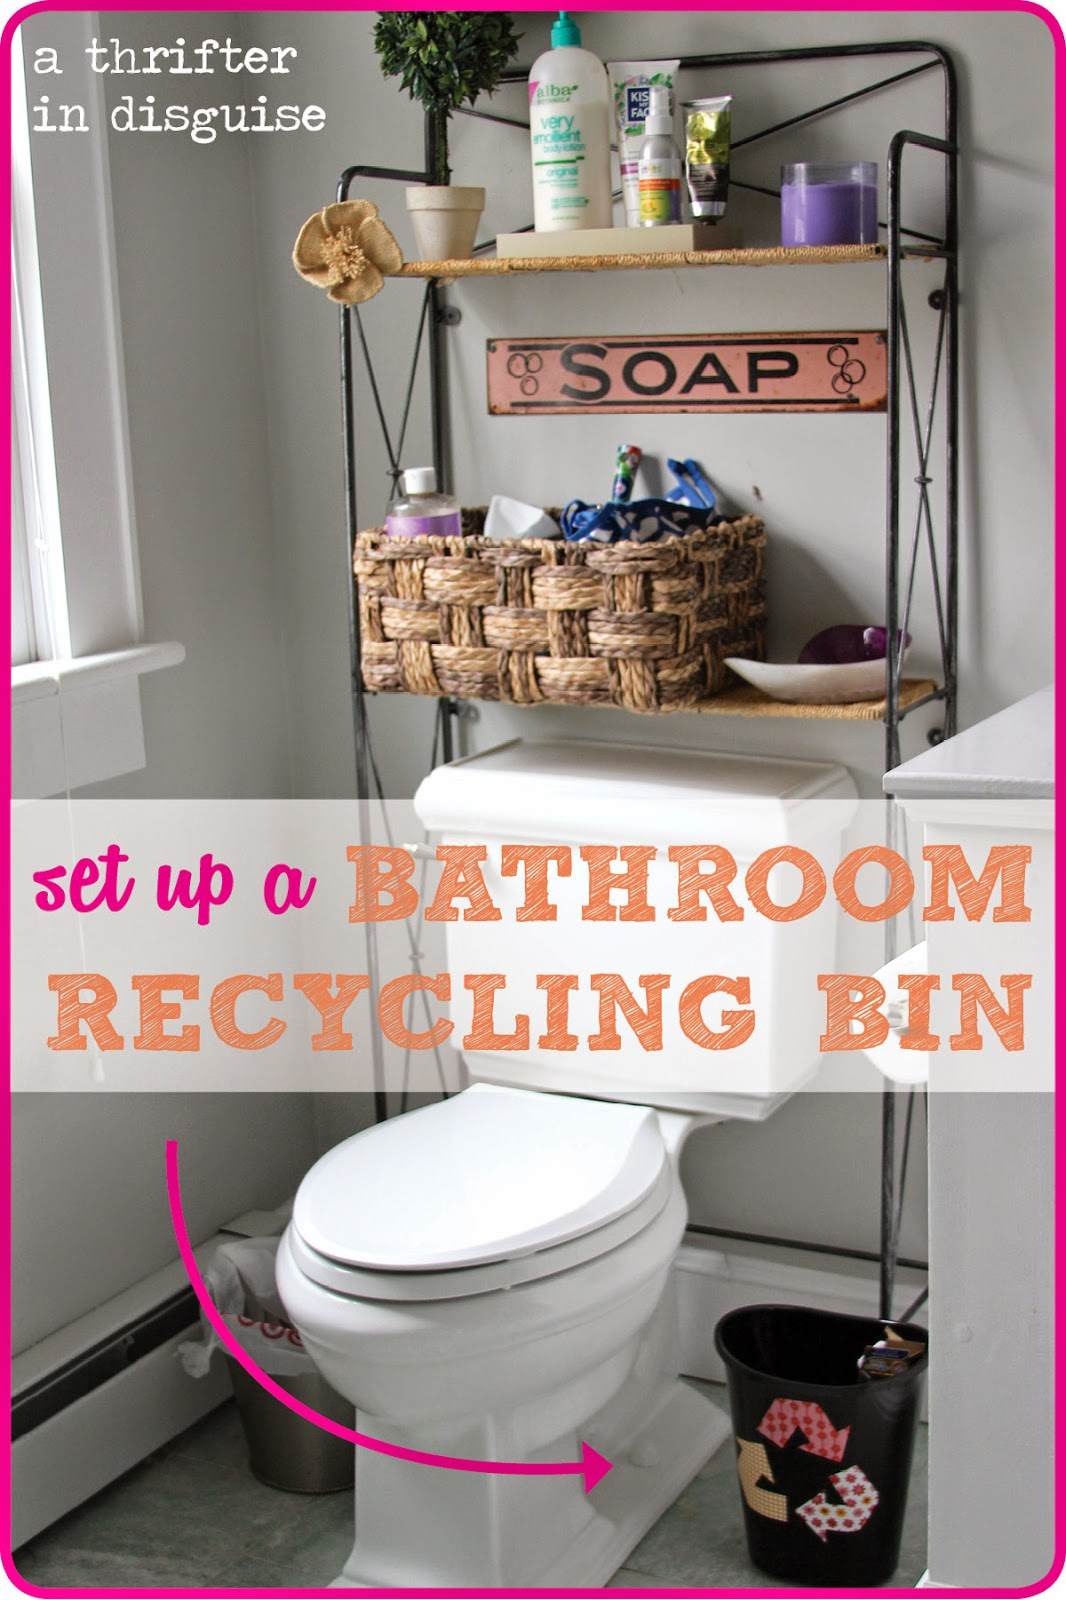 eco-friendly ideas for the bathroom